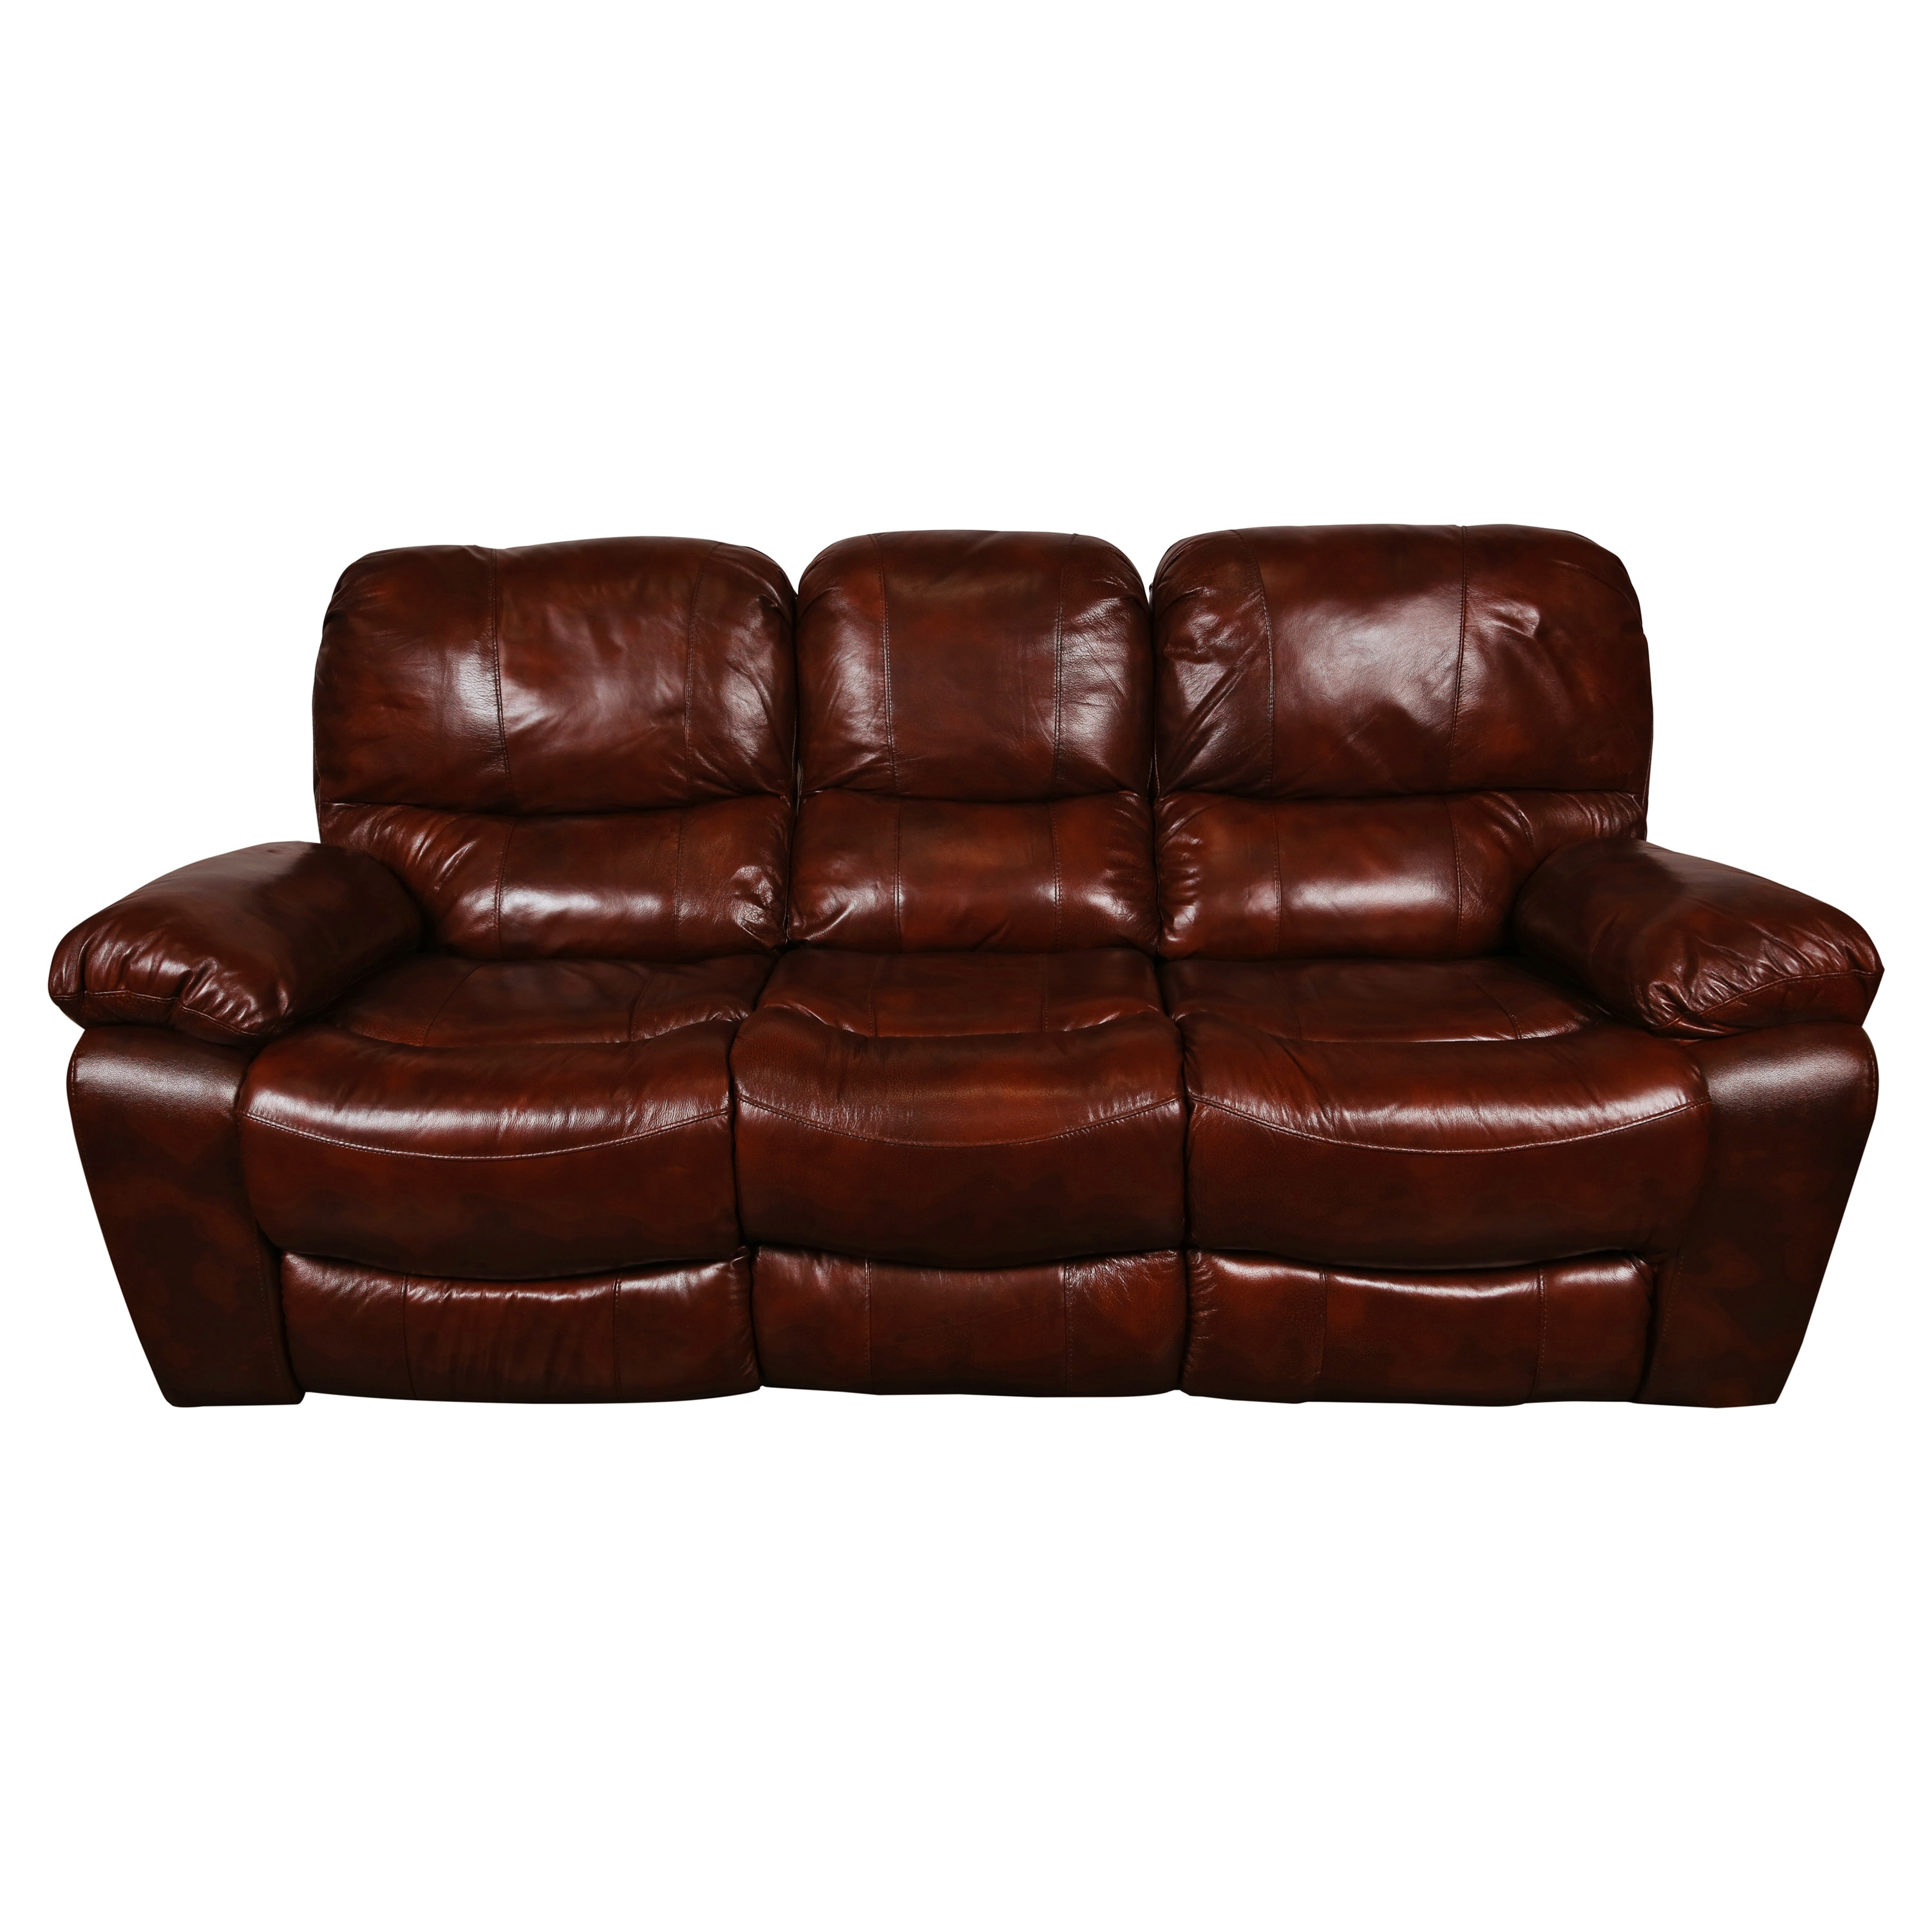 Porter Ramsey Cognac Brown Top Grain Leather Dual Reclining Sofa On Free Shipping Today 13000482